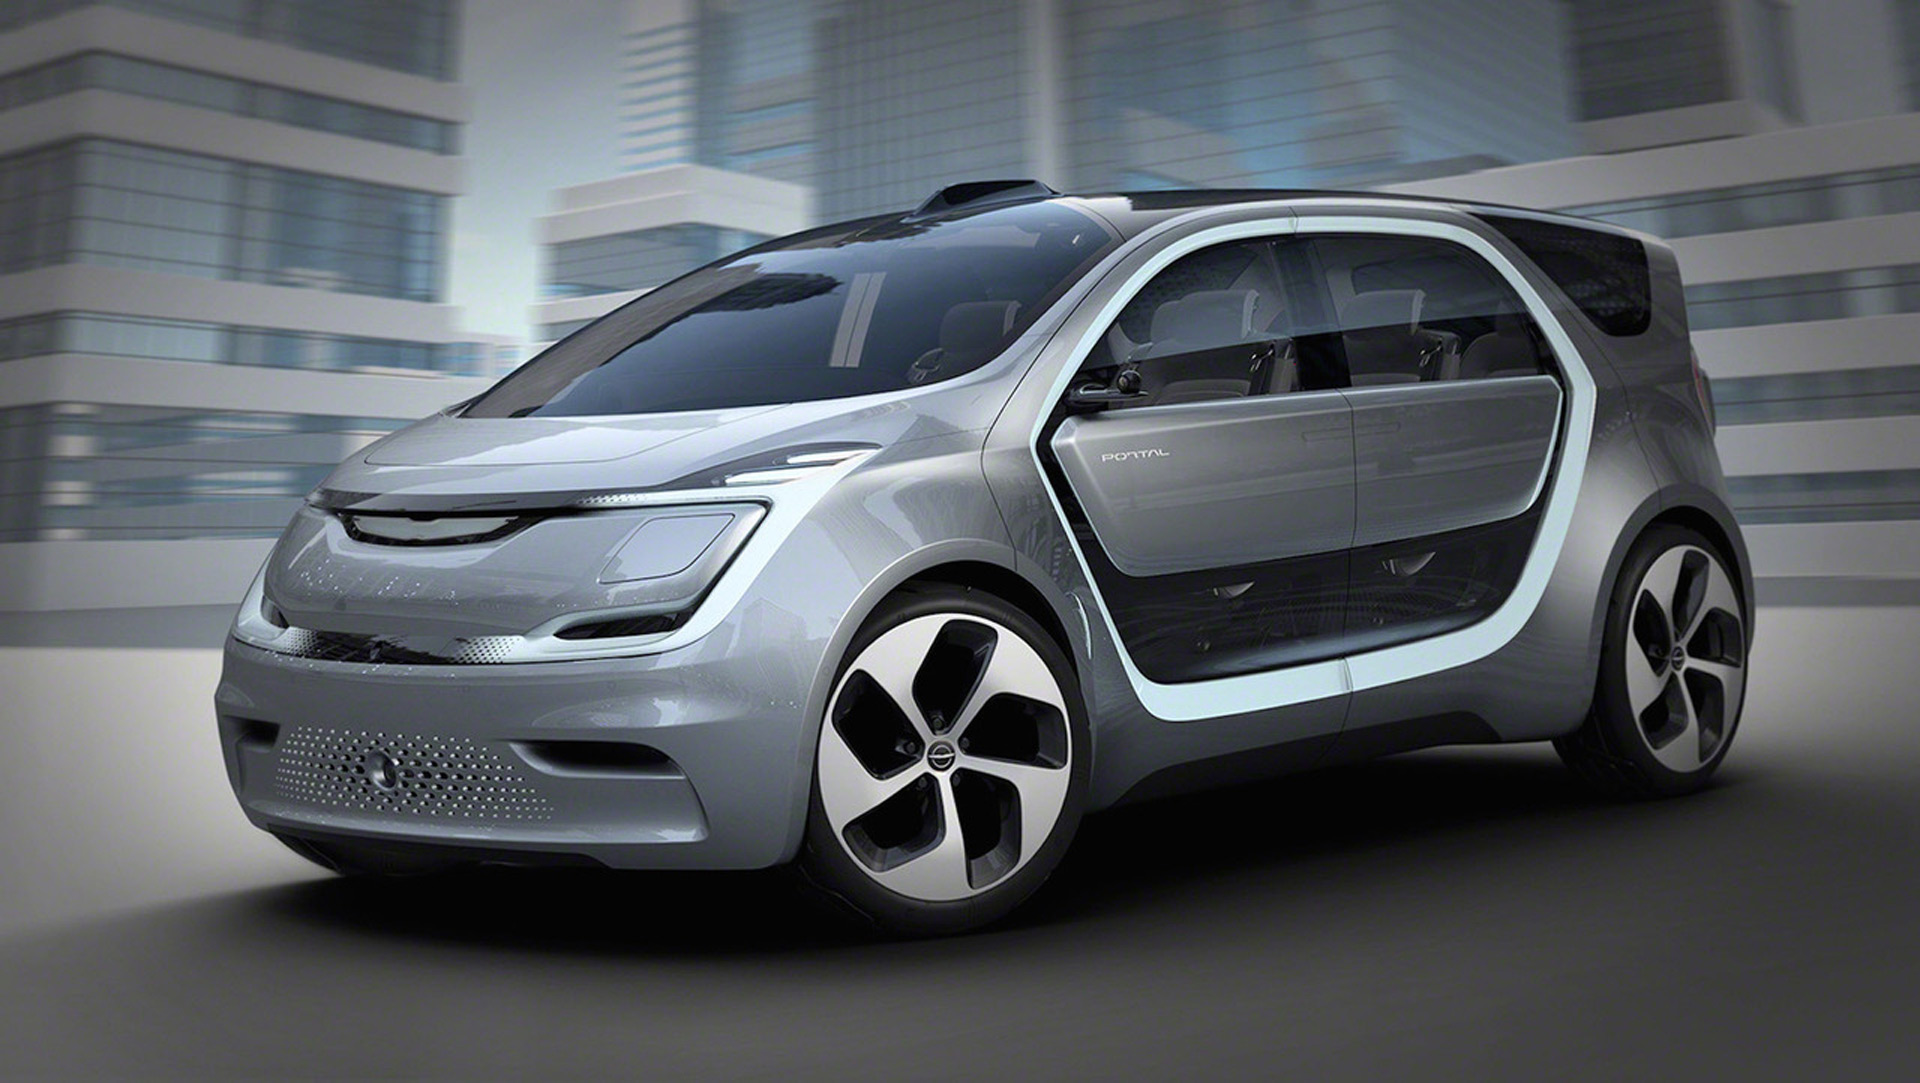 Chrysler Portal Concept Is An Electric Van With Level 3 Self Driving Capability